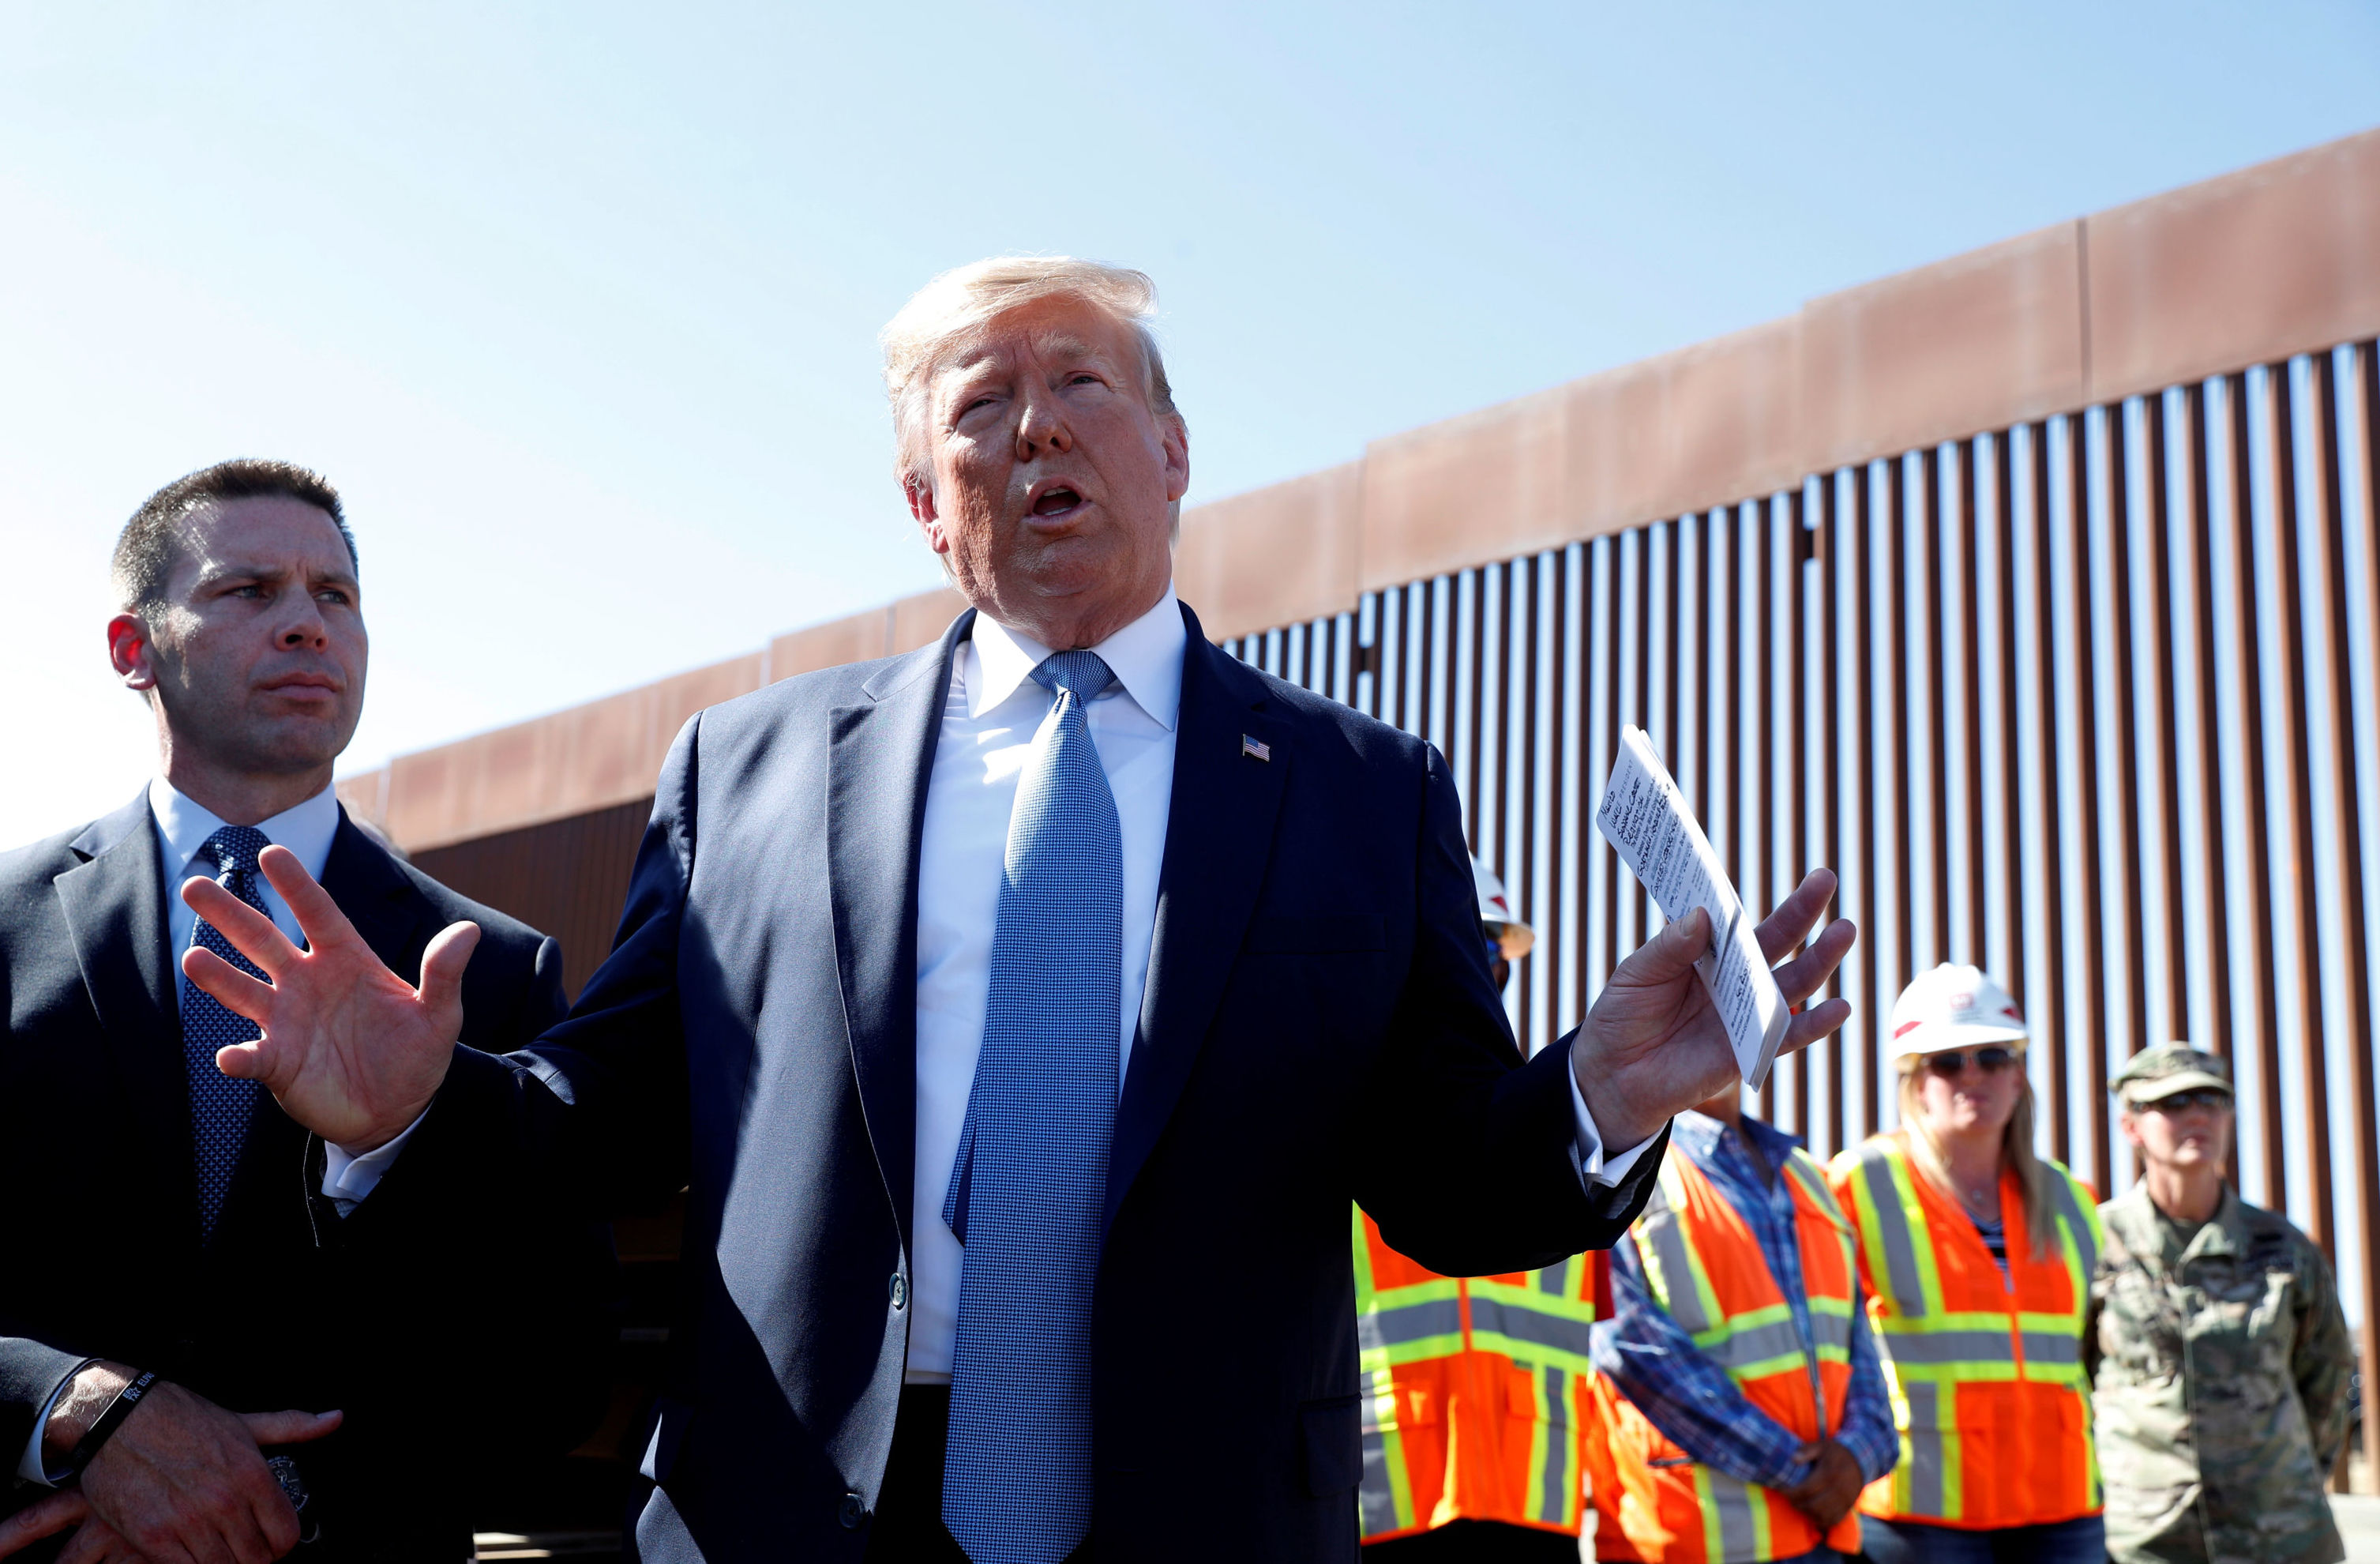 U.S. President Donald Trump speaks during his visit to a section of the U.S.-Mexico border wall in Otay Mesa, California, U.S. September 18, 2019